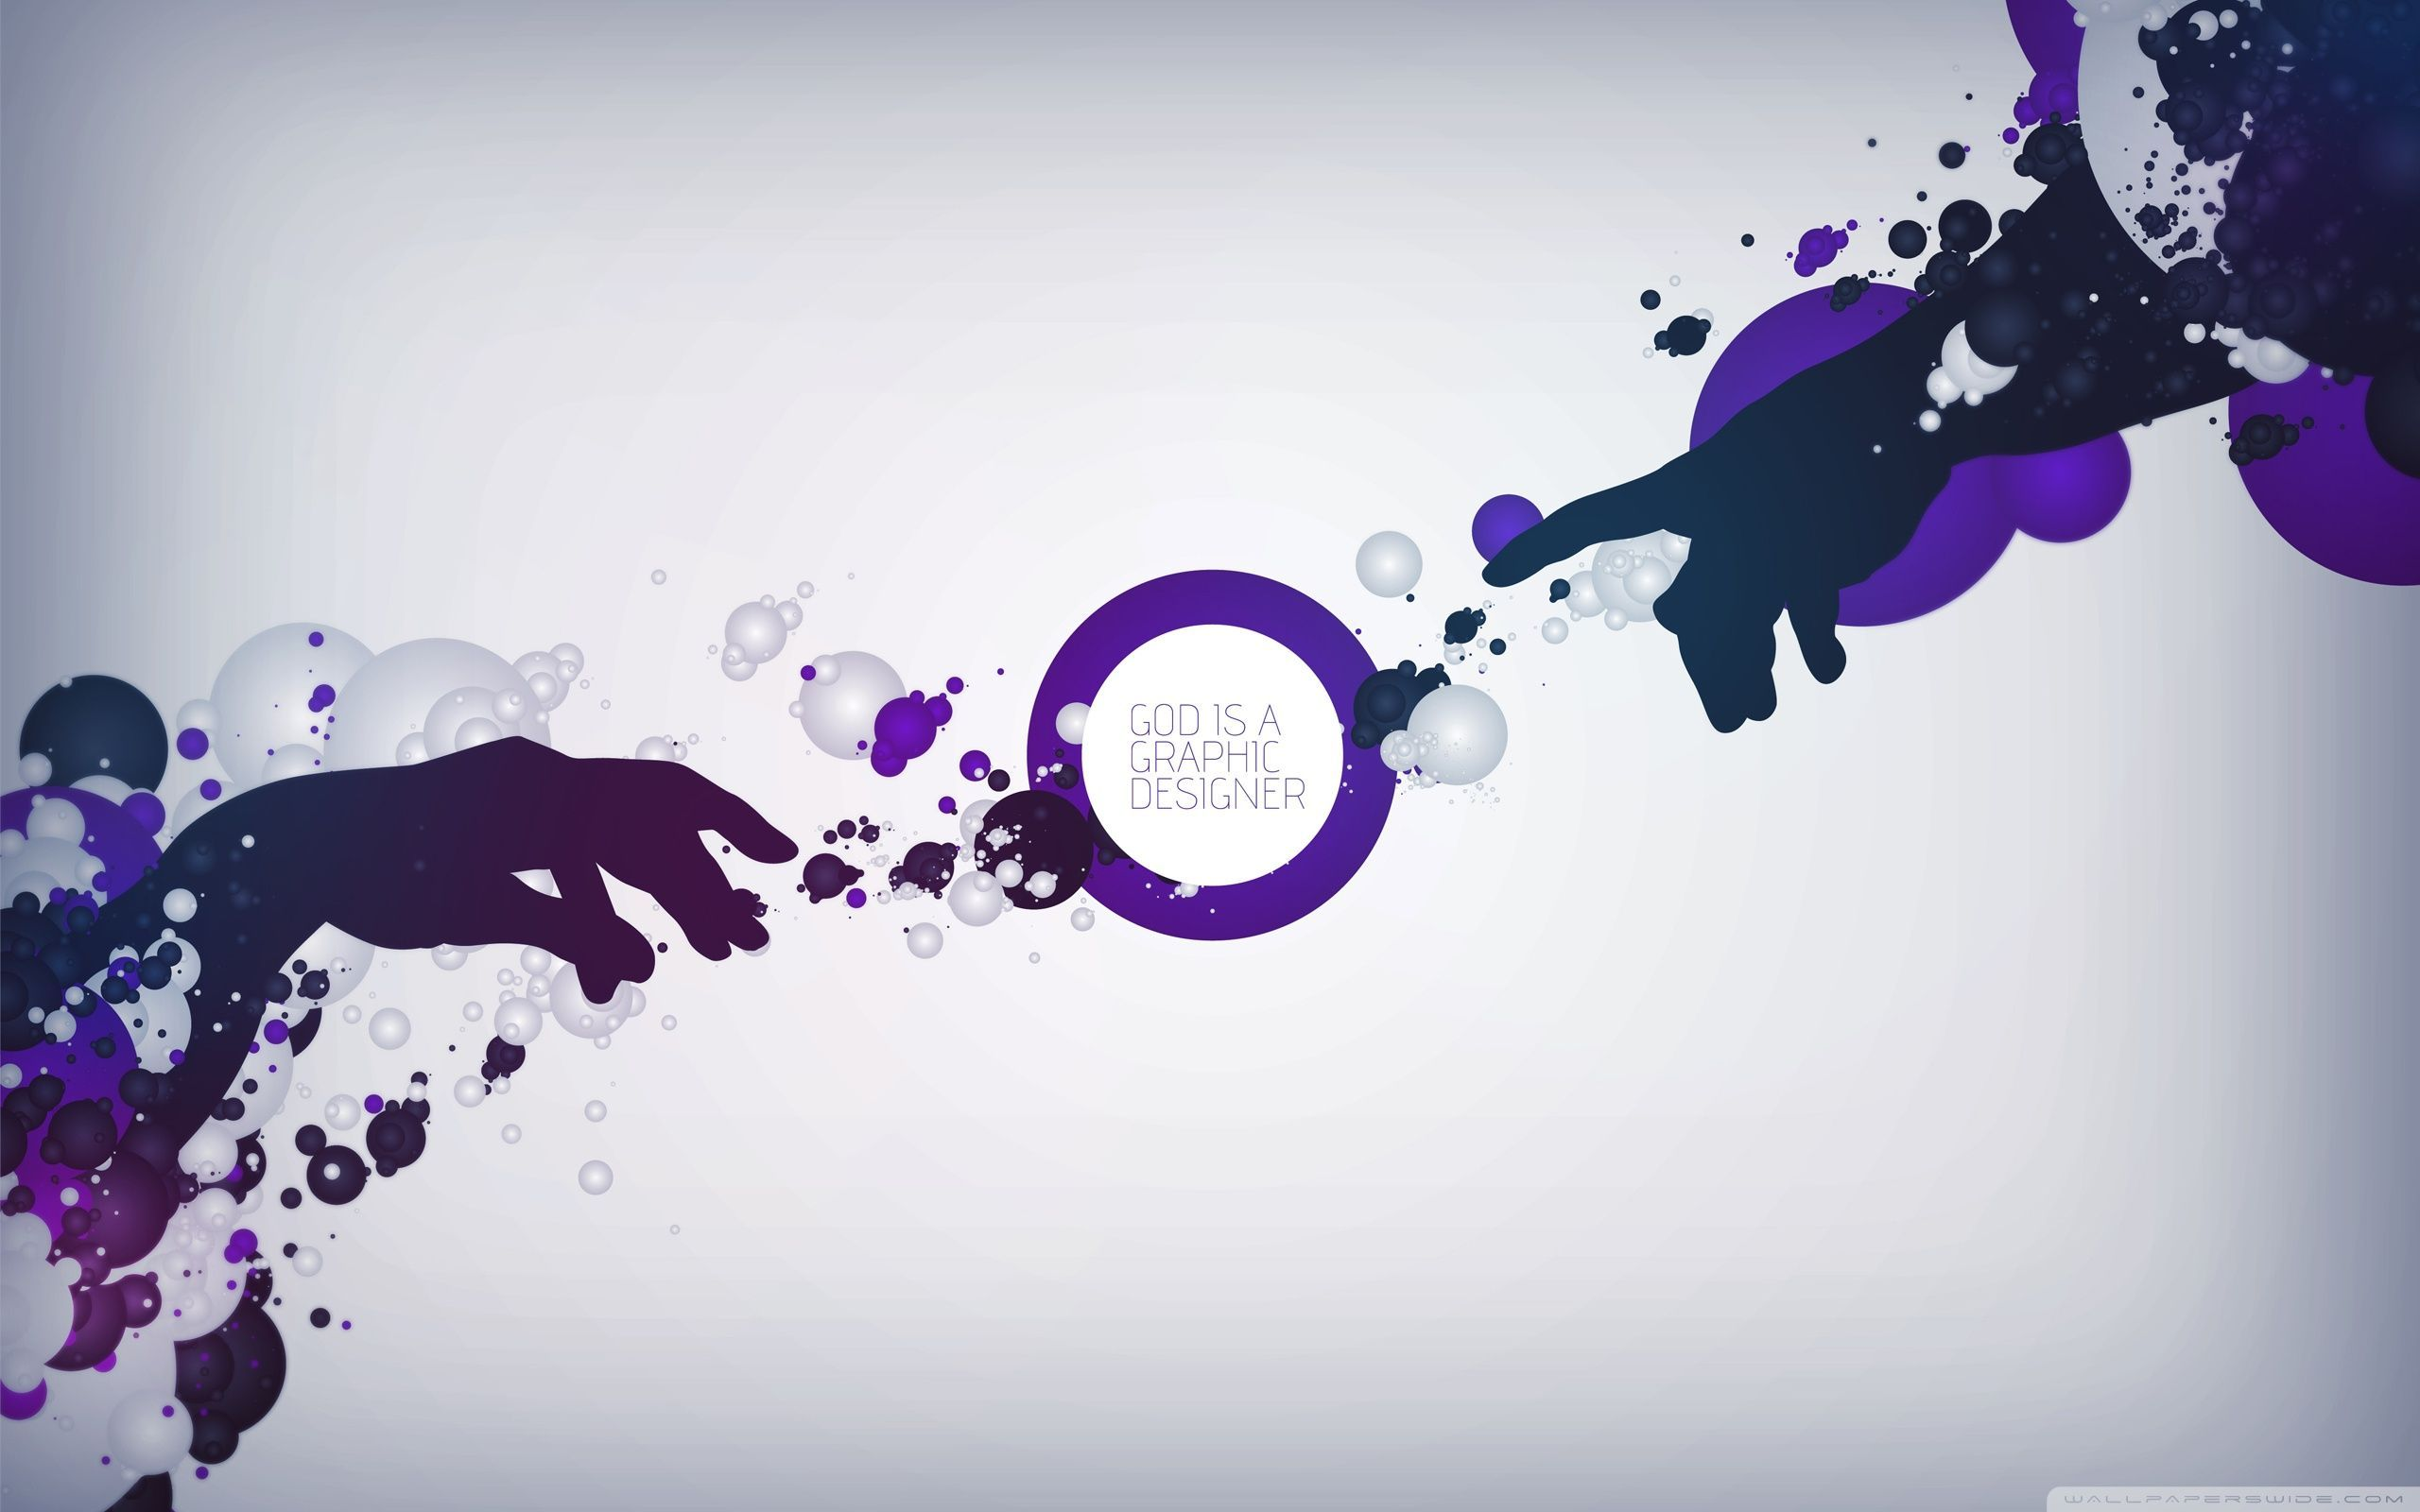 Graphic Design Wallpapers   20k, HD Graphic Design Backgrounds on ...